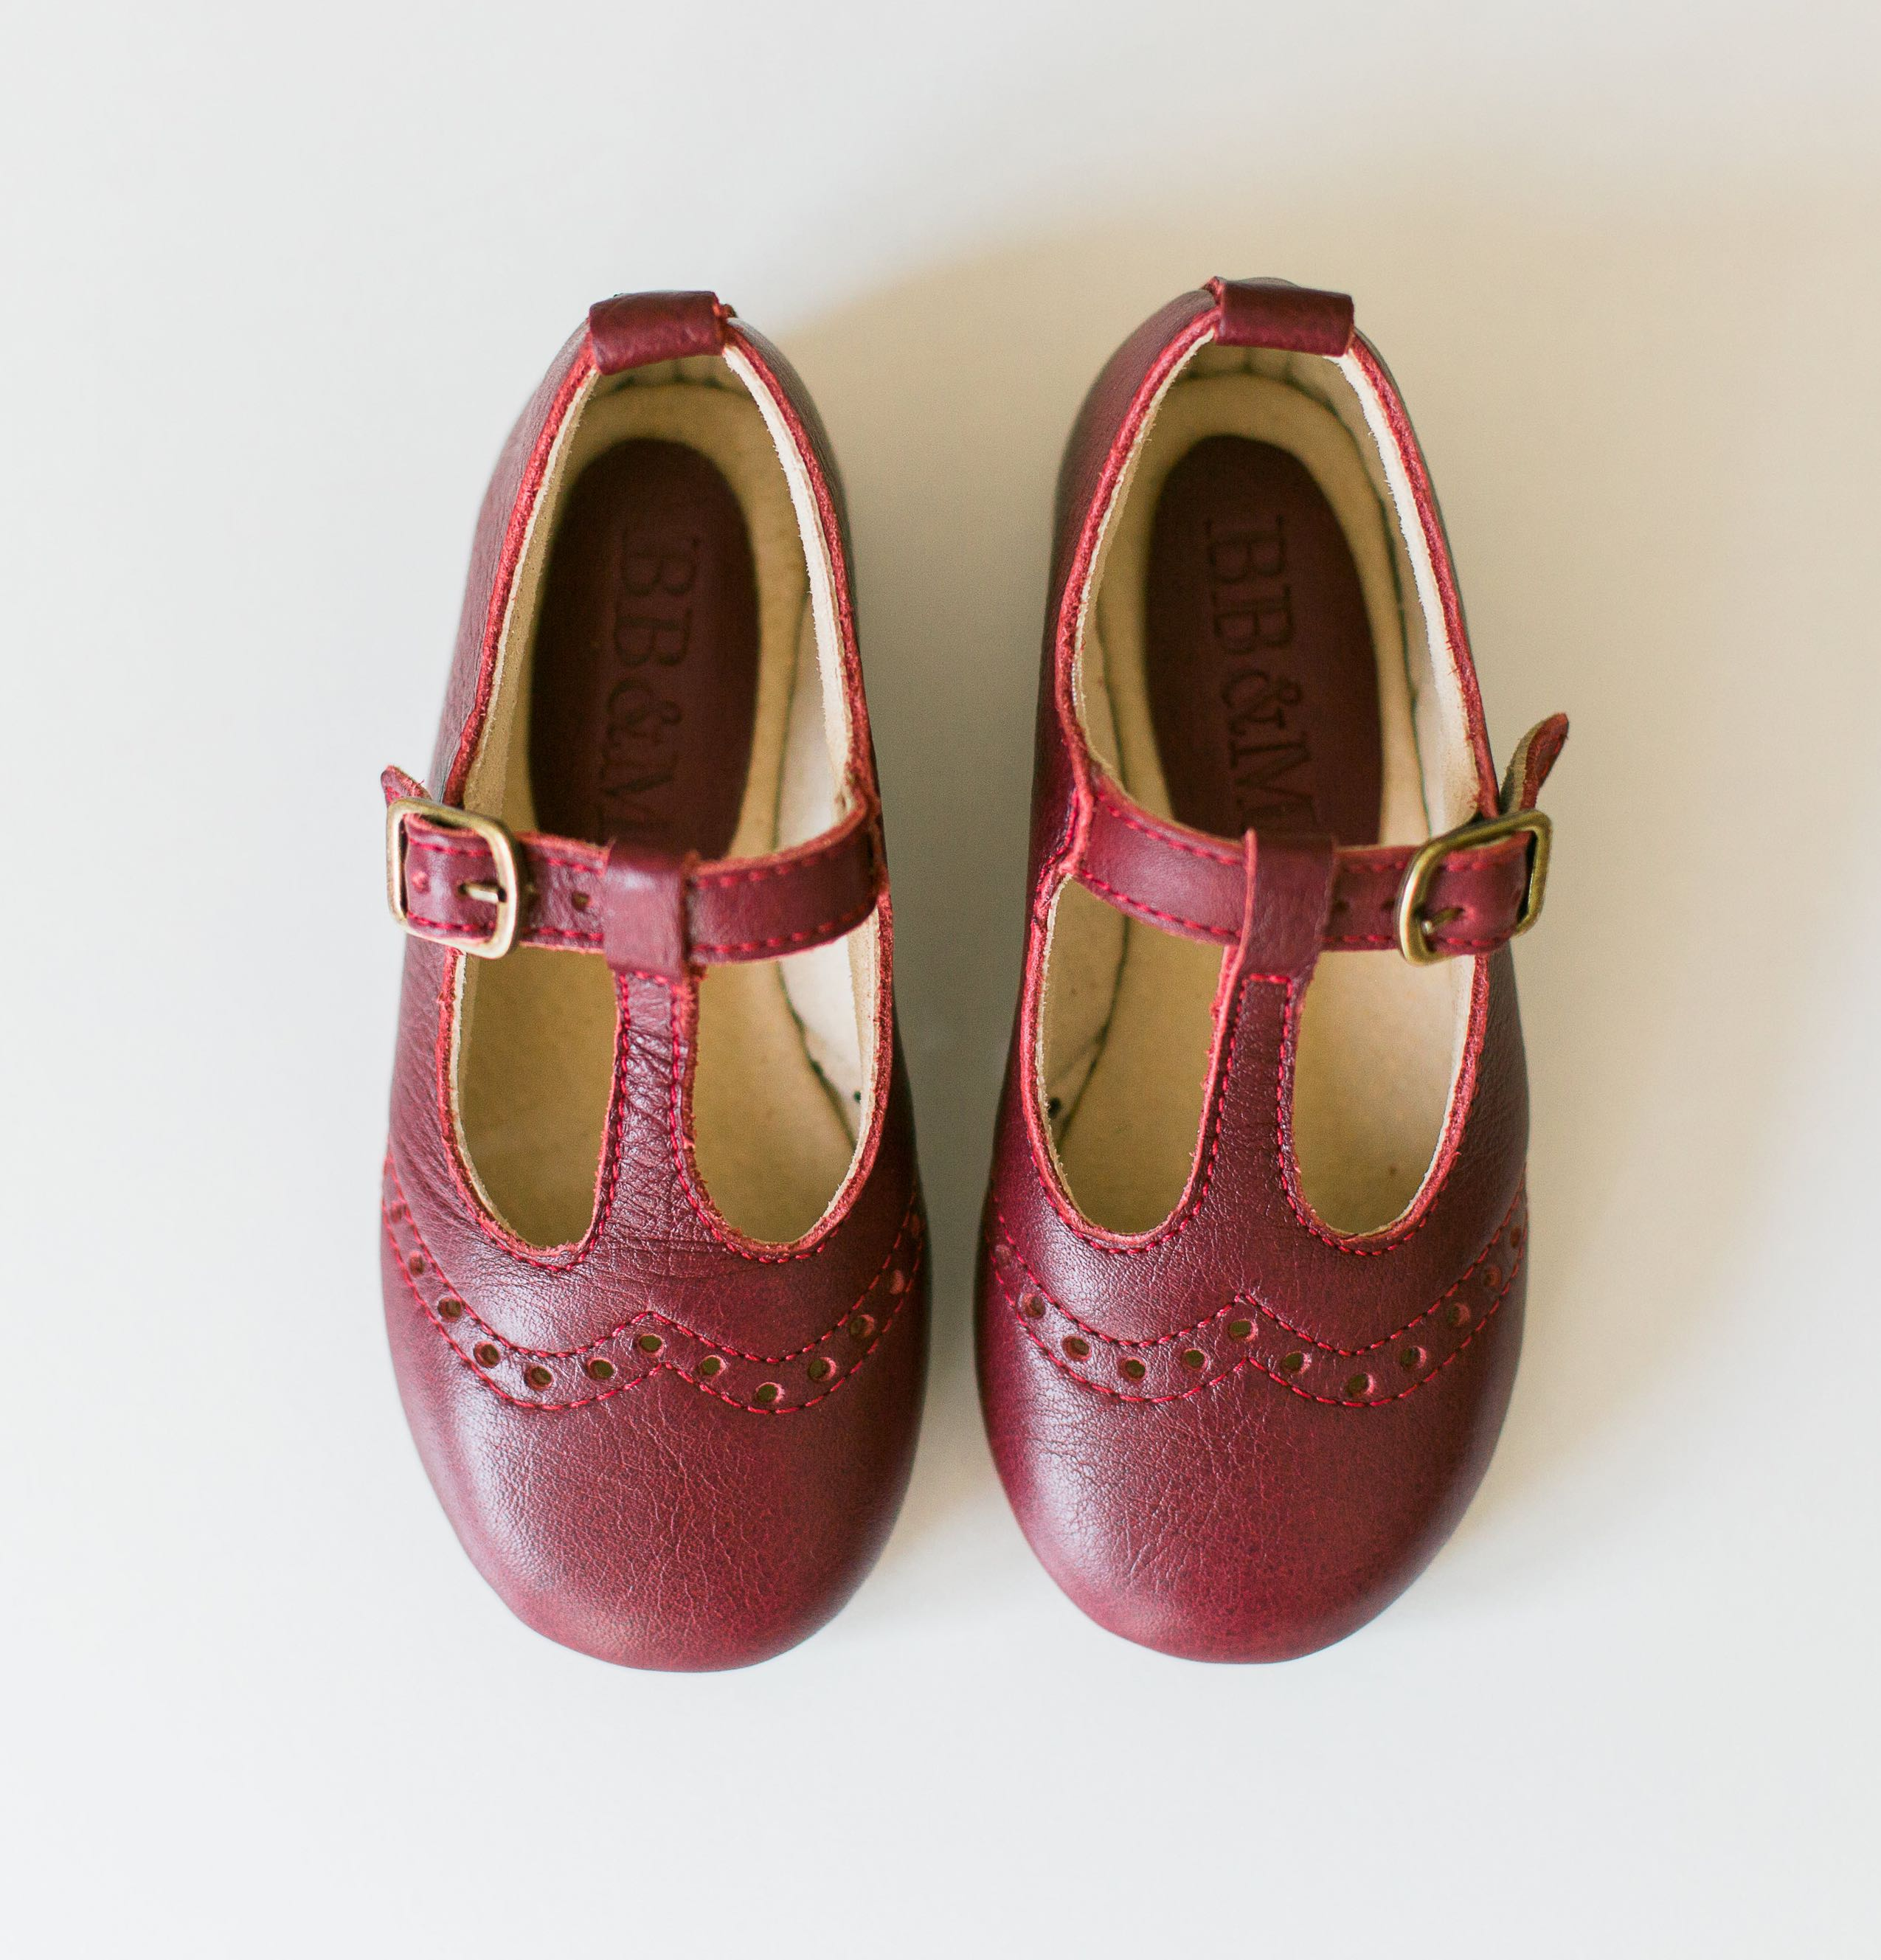 Girls Burgundy T-bar Mary Janes with broguing - MJ1